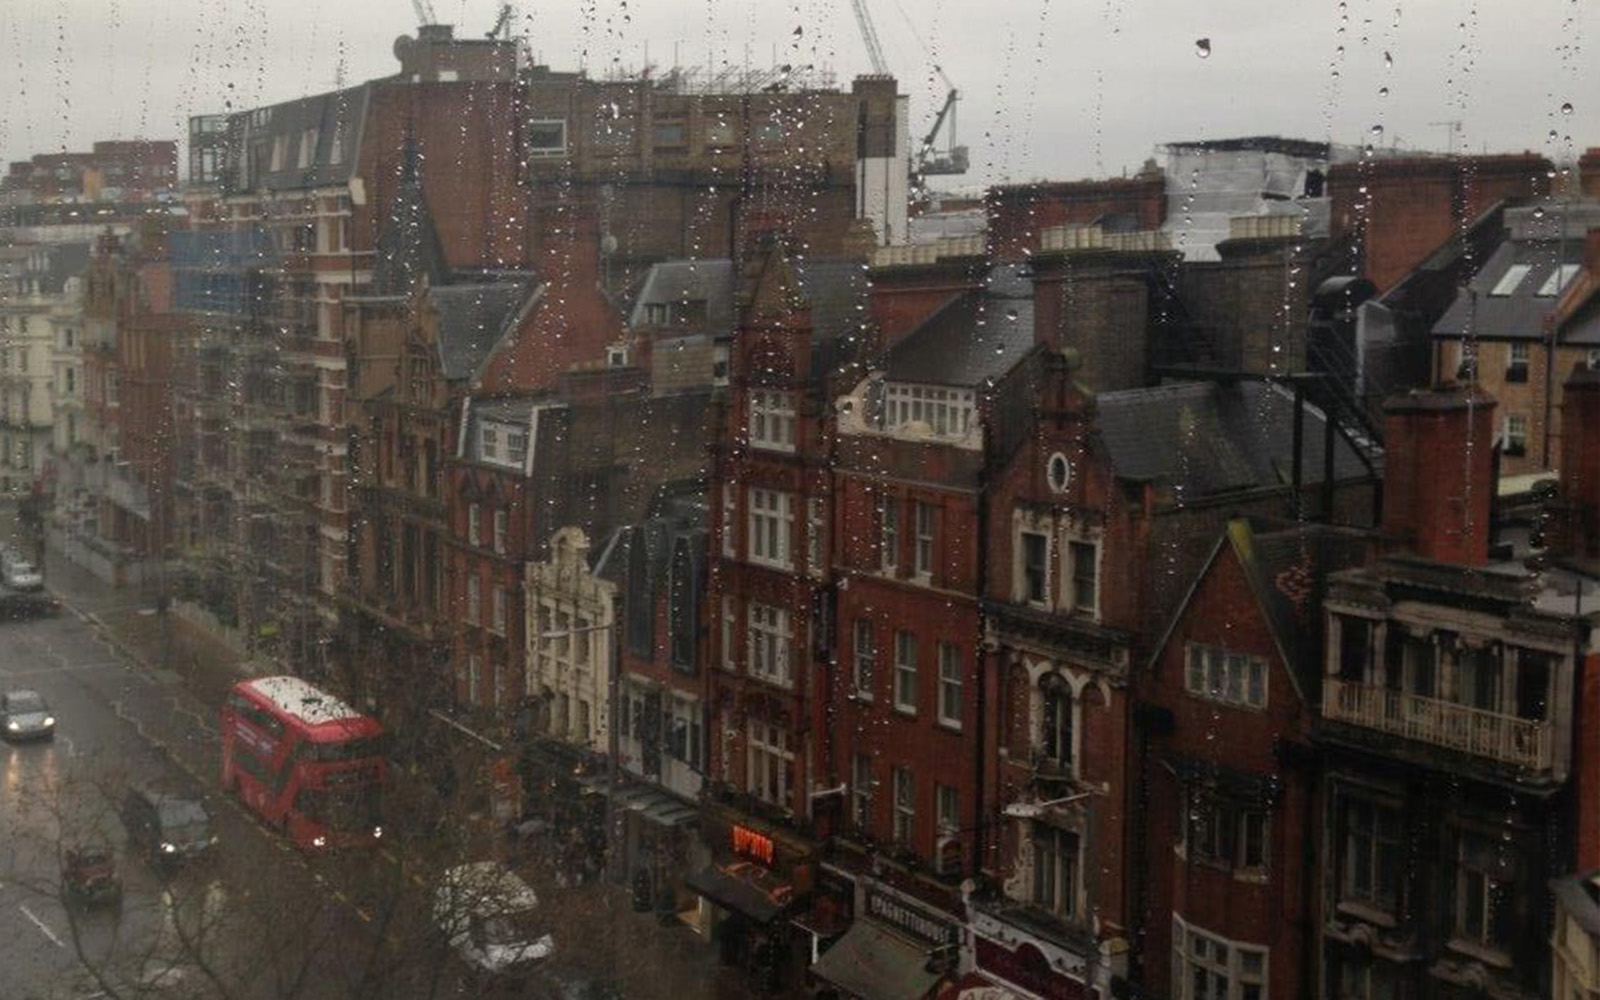 Usual London Weather From Royal Garden Hotel Window